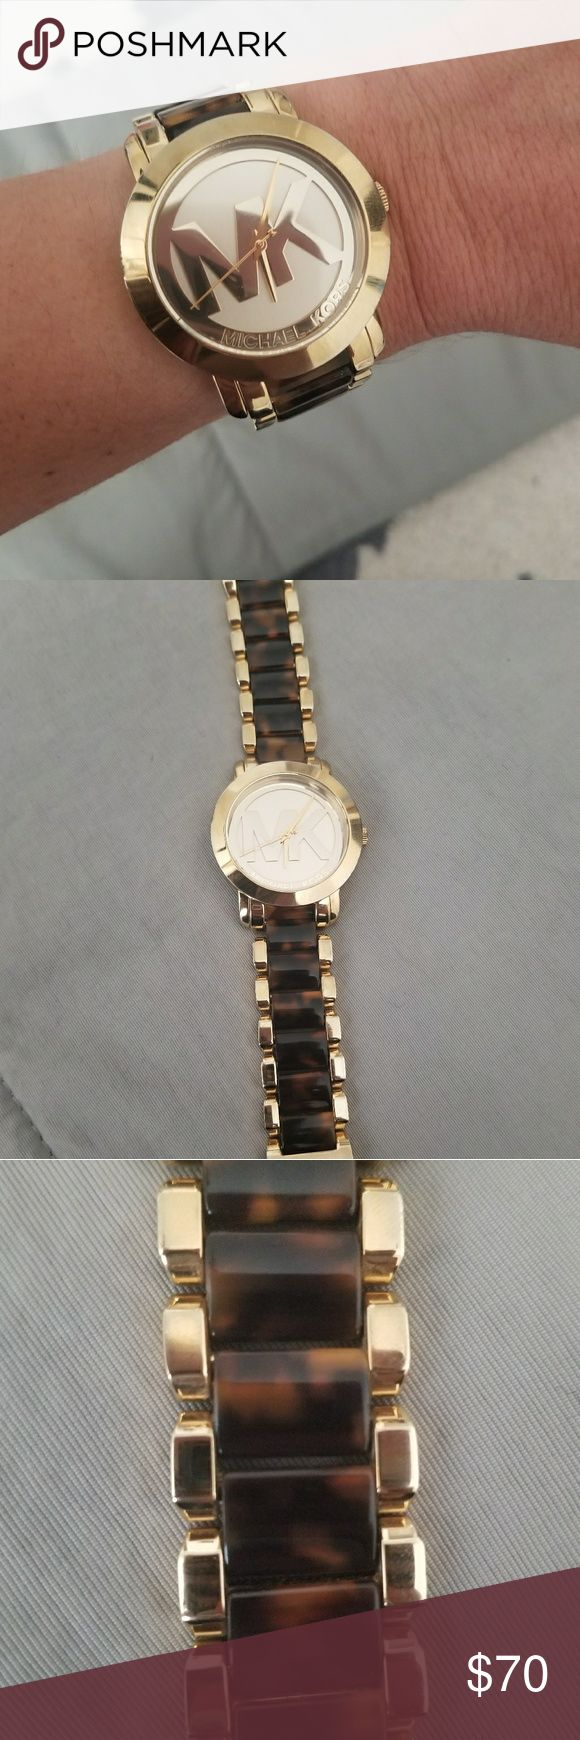 Michael Kors Watch 💗 My absolute favorite watch 💗   Classy gold face and trim with dual brown links. Great condition, only worn a few times.   Needs new battery but I can replace if easier for you. Just add $5 to price.  Small scratch top left edge of face, scuff shown in last picture. Hardly noticeable. Picture represents true condition. You'll absolutely love this watch.   Priced lower only because of battery and small scratch. Message me if you have any questions!  Ships in 2 days, can…